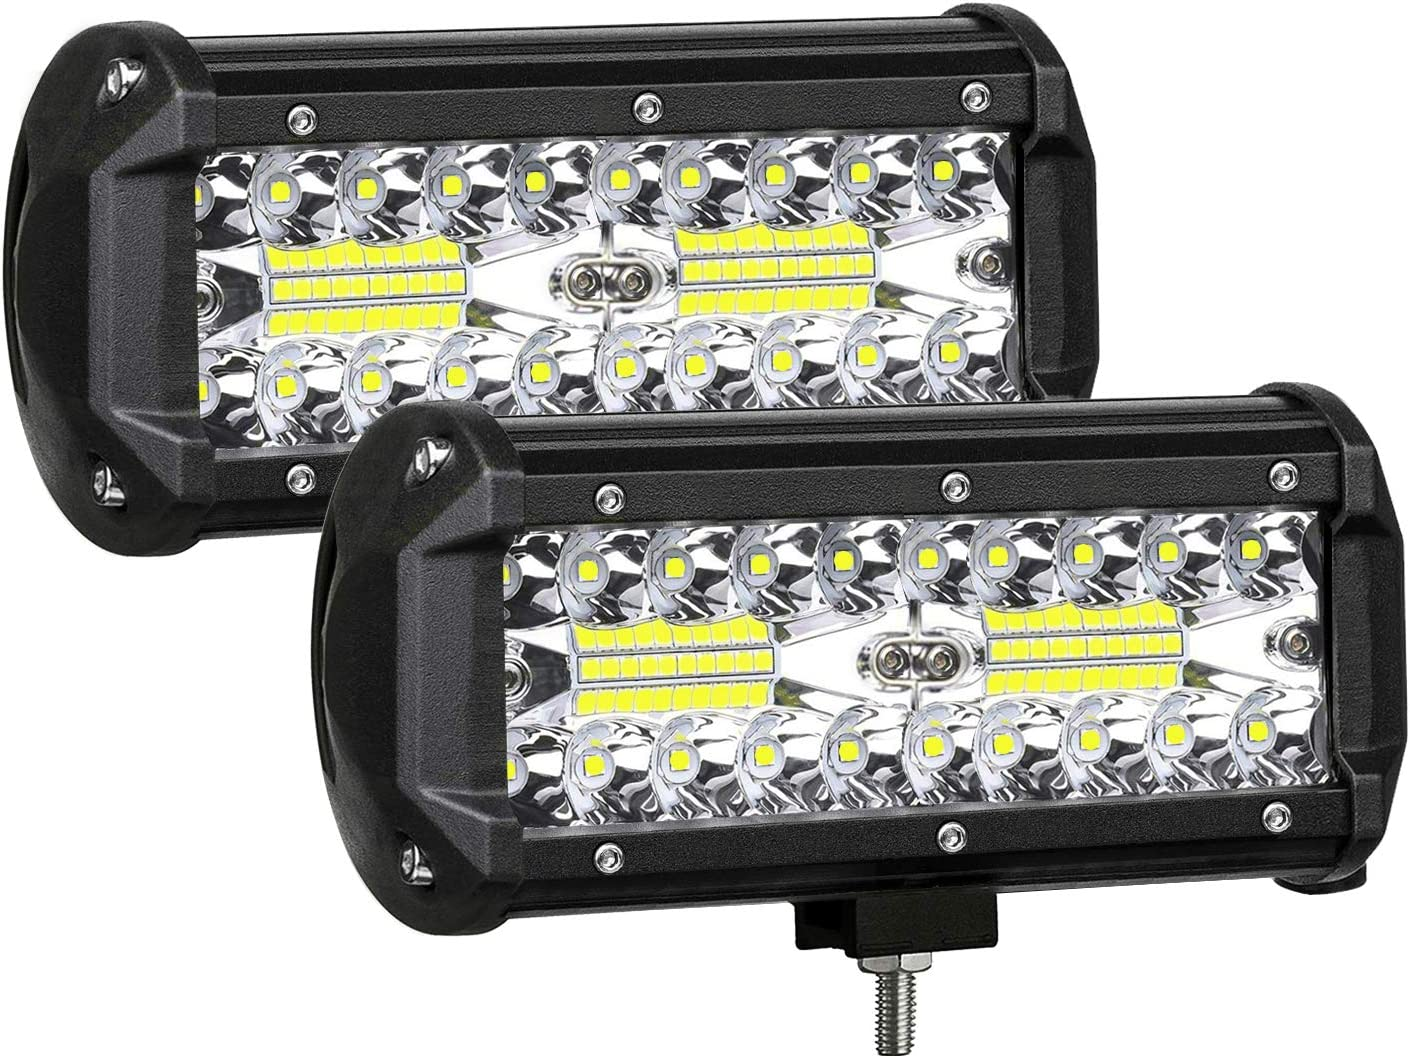 Zmoon LED Light Bar Blue 7in 240W 24000LM Off Road Driving Light 2pcs Waterproof Pod Light with DRL//Angel Eye Spot/&Flood Combo Beam Work Light for SUV//ATV//Jeep//Boat